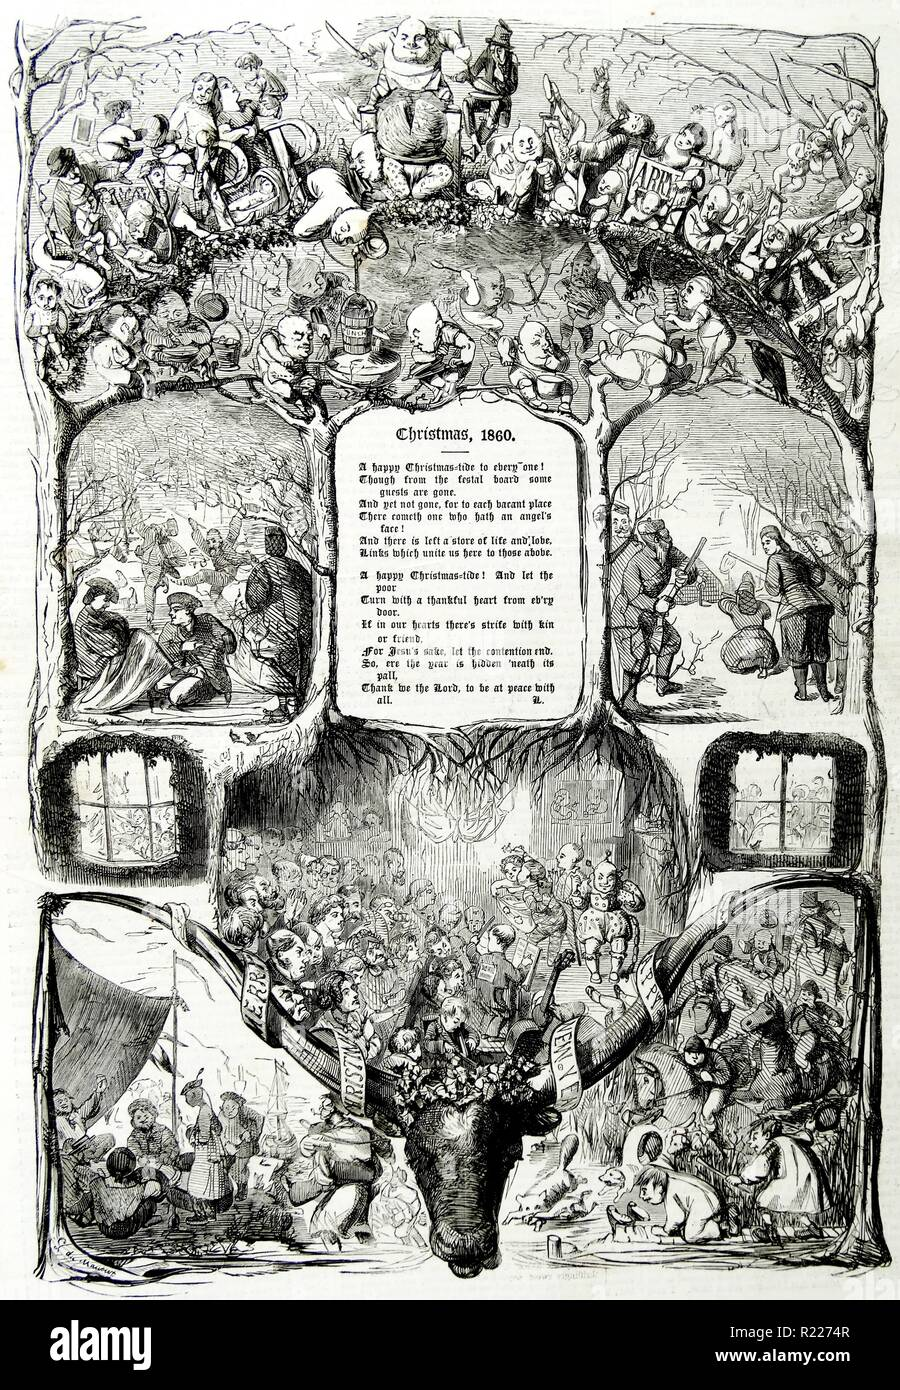 Title page illustration from a British newspaper of Christmas 1860 - Stock Image